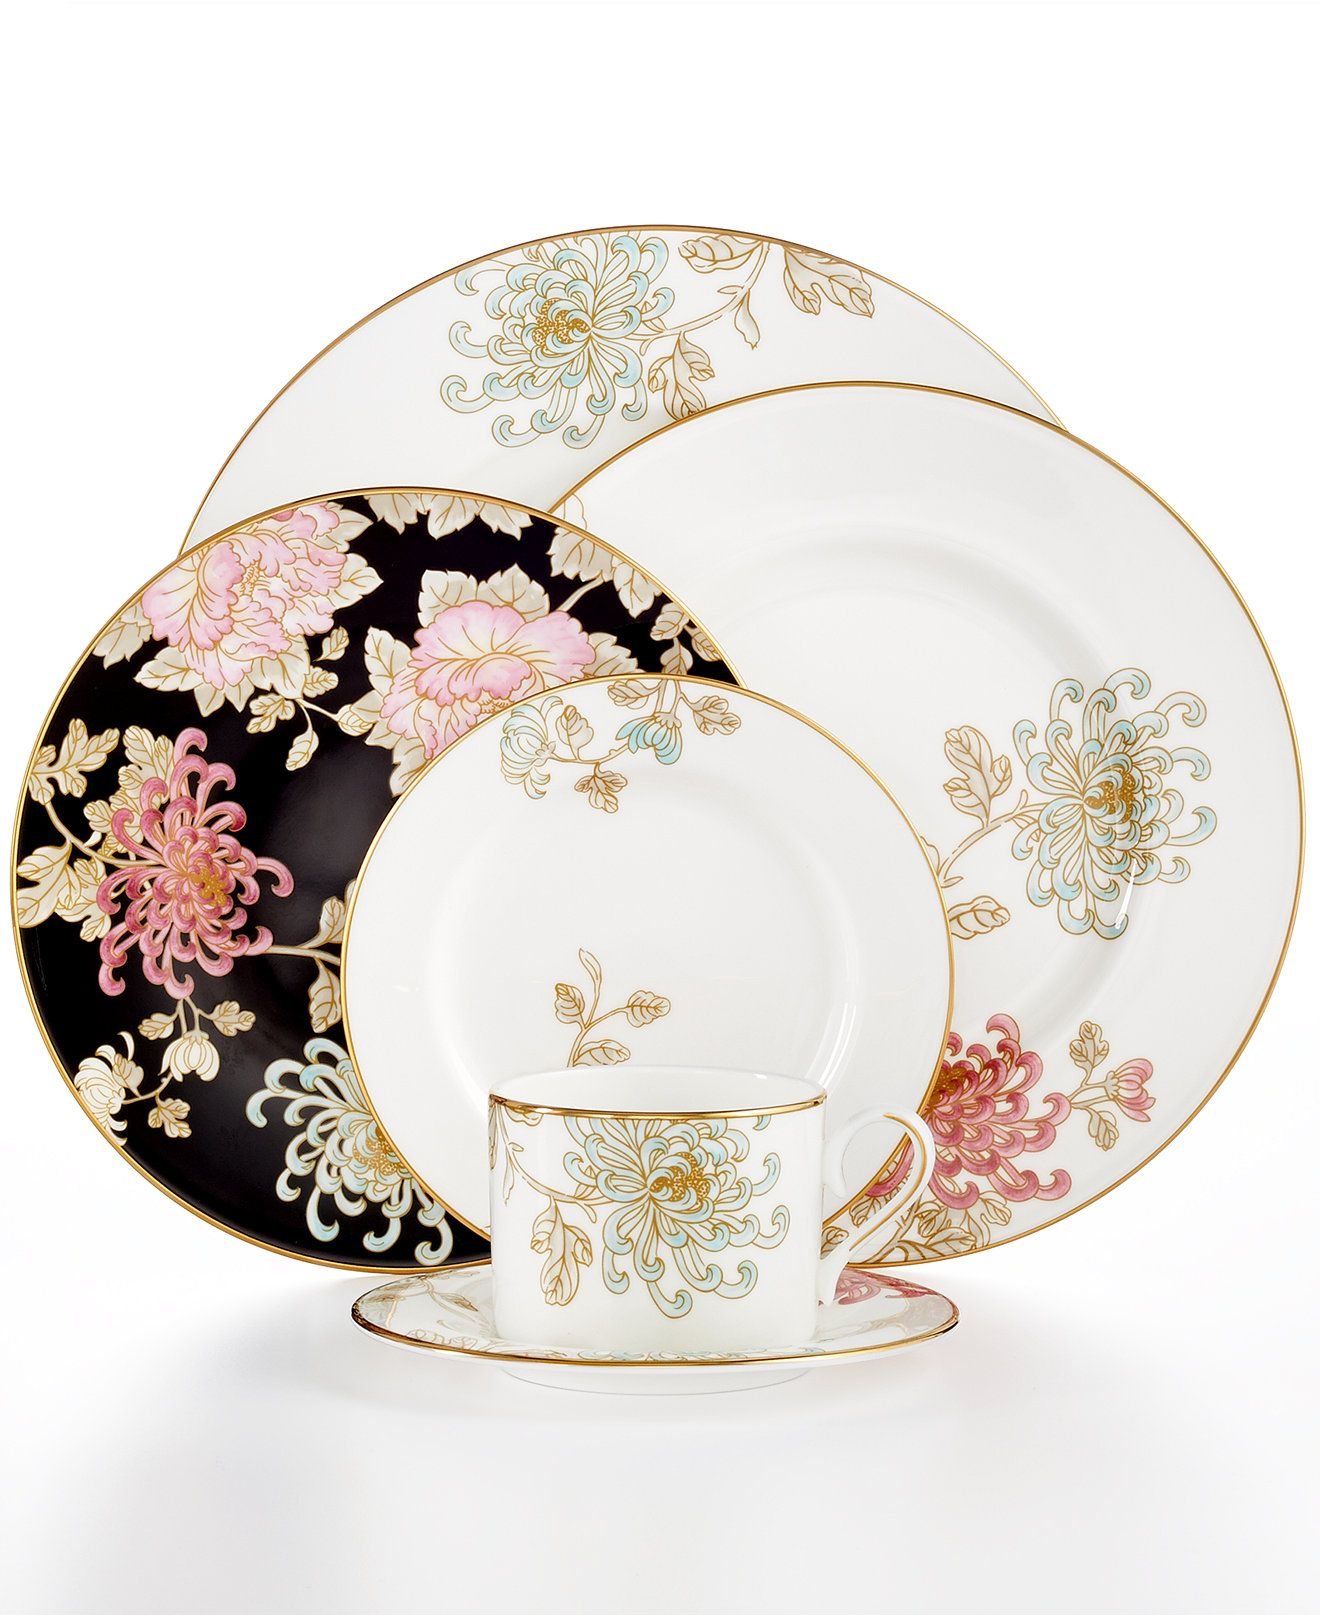 Marchesa by Lenox Dinnerware Painted Camellia Collection - Fine China - Macy\u0027s Bridal and Wedding  sc 1 st  Pinterest & Marchesa by Lenox Dinnerware Painted Camellia Collection - Fine ...